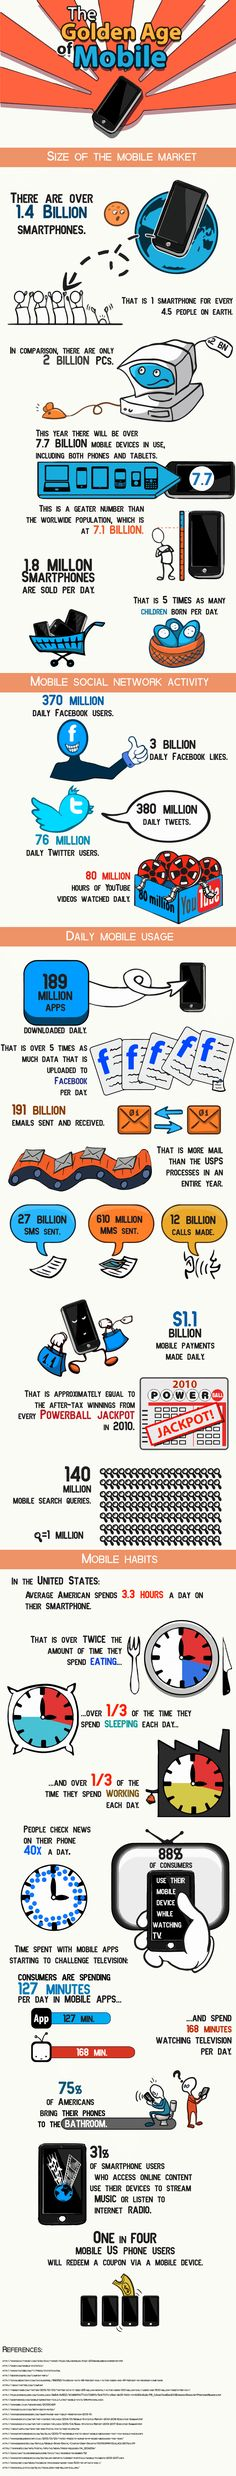 The Golden Age of #Mobile - #infographic